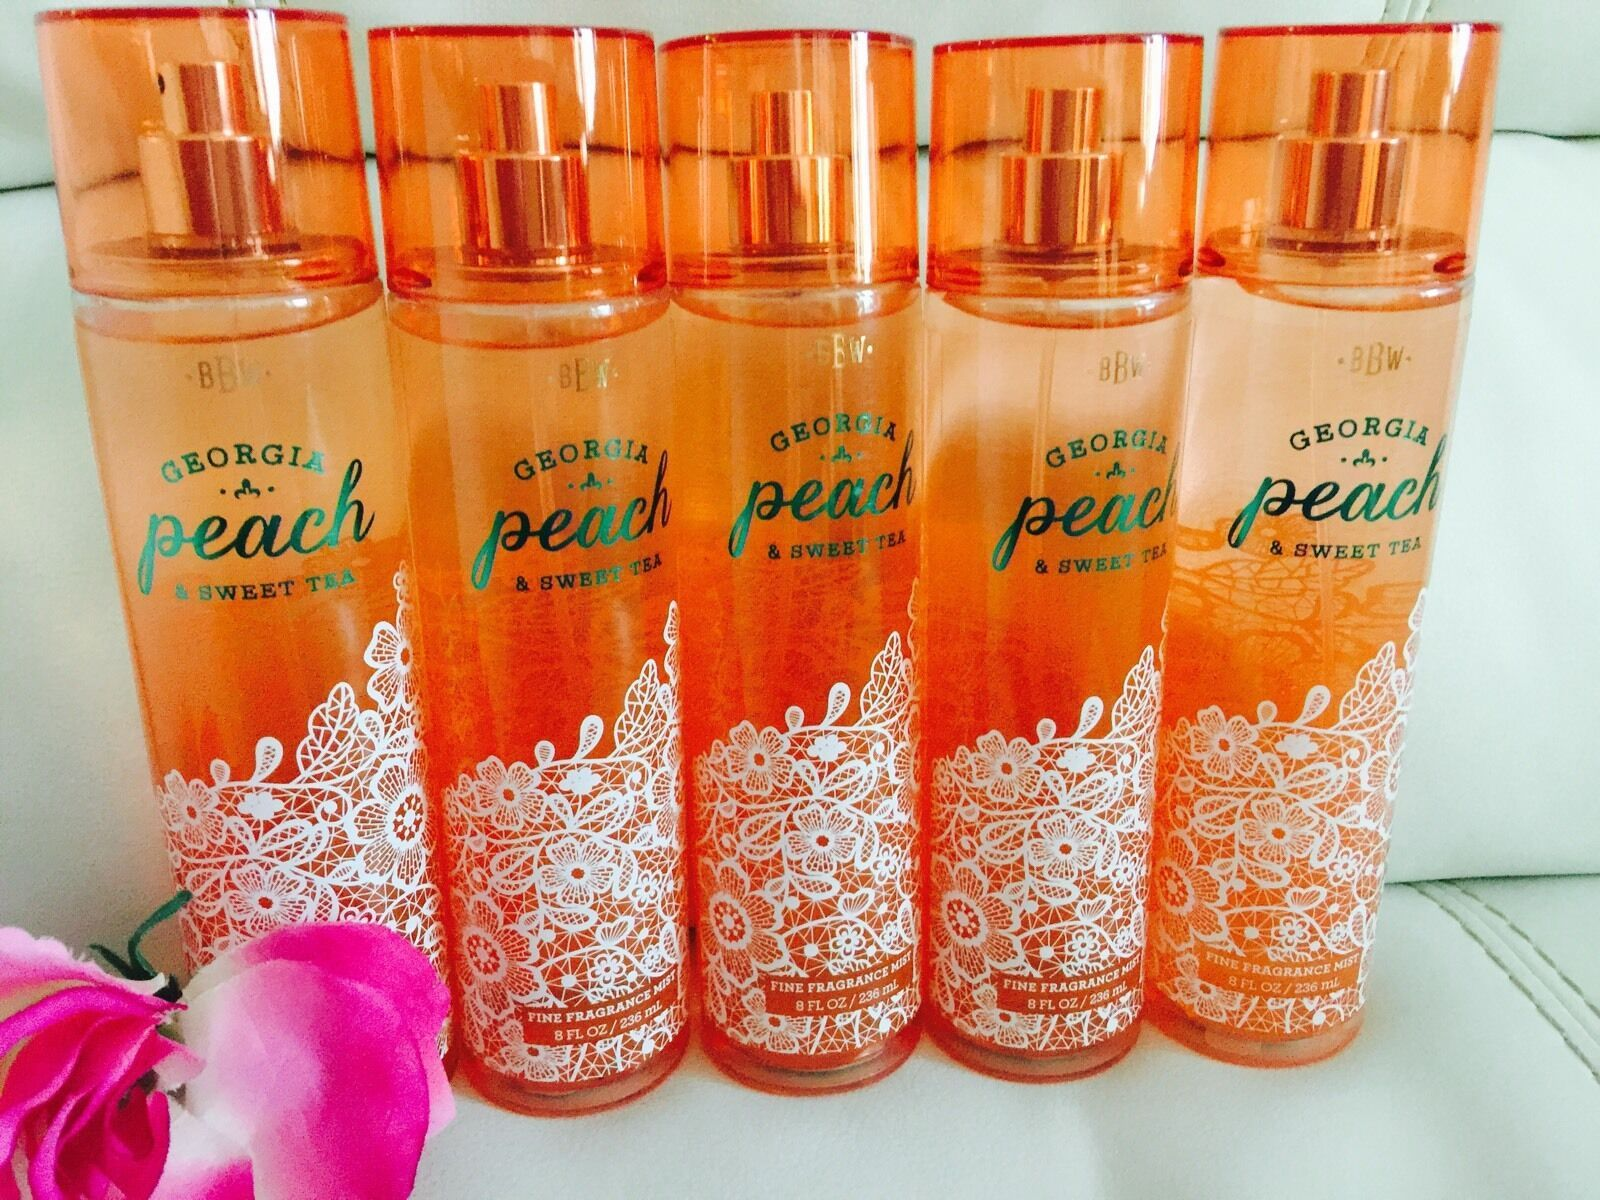 Total 5 Bath & Body Works Georgia Peach & Sweet Tea  Body Mist Full Size 8.4 Oz image 2